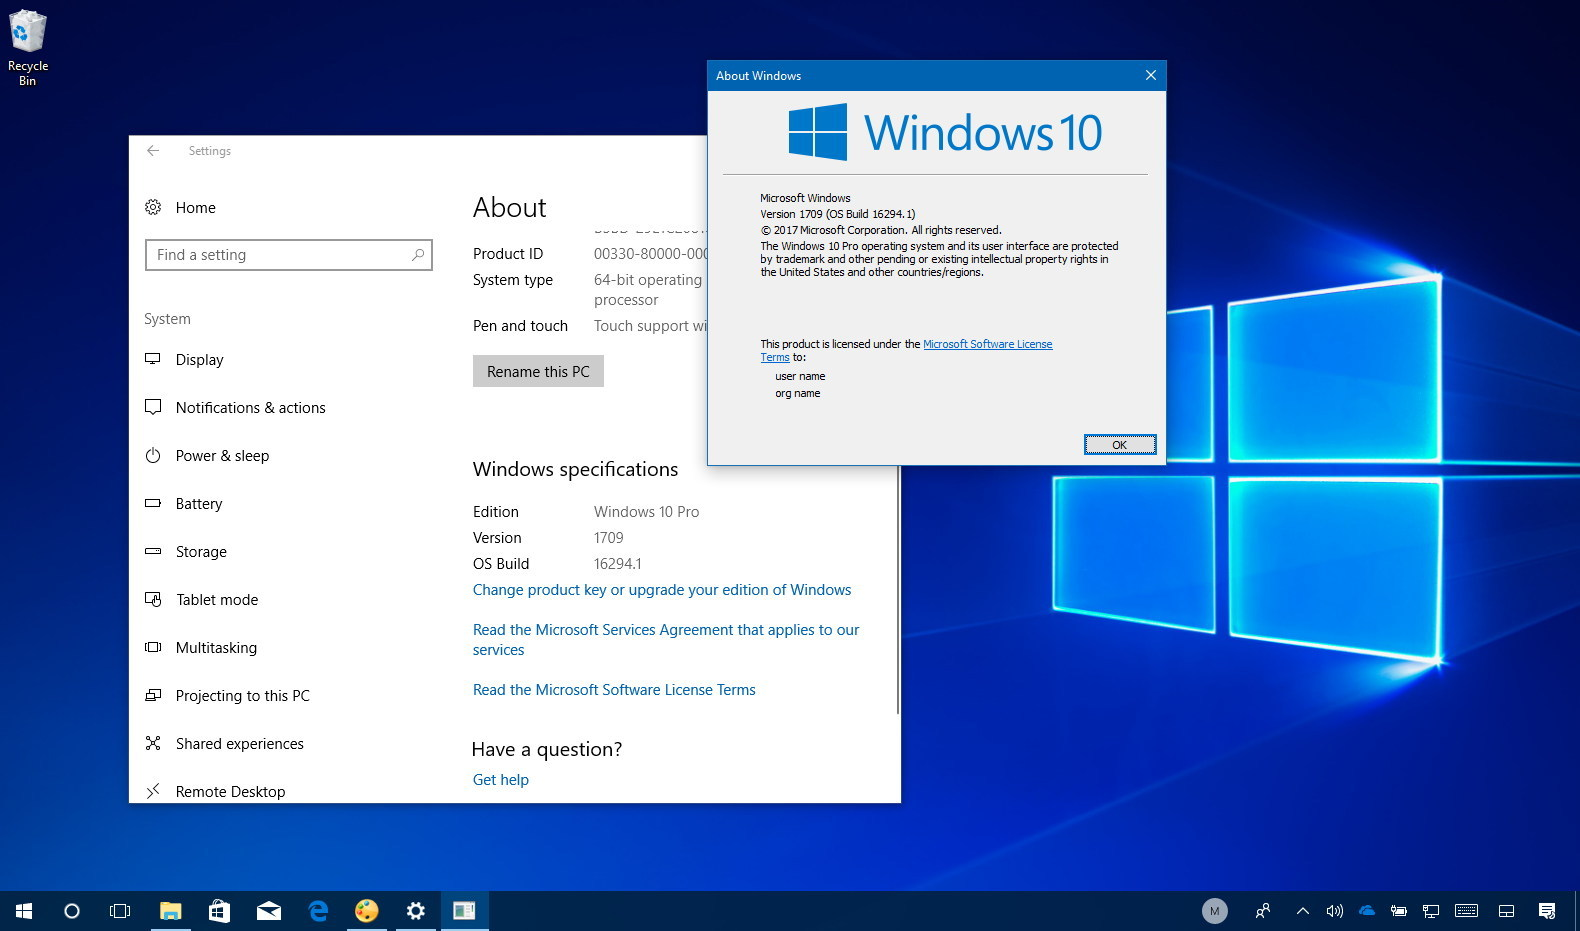 How to check the Windows 10 Fall Creators Update is